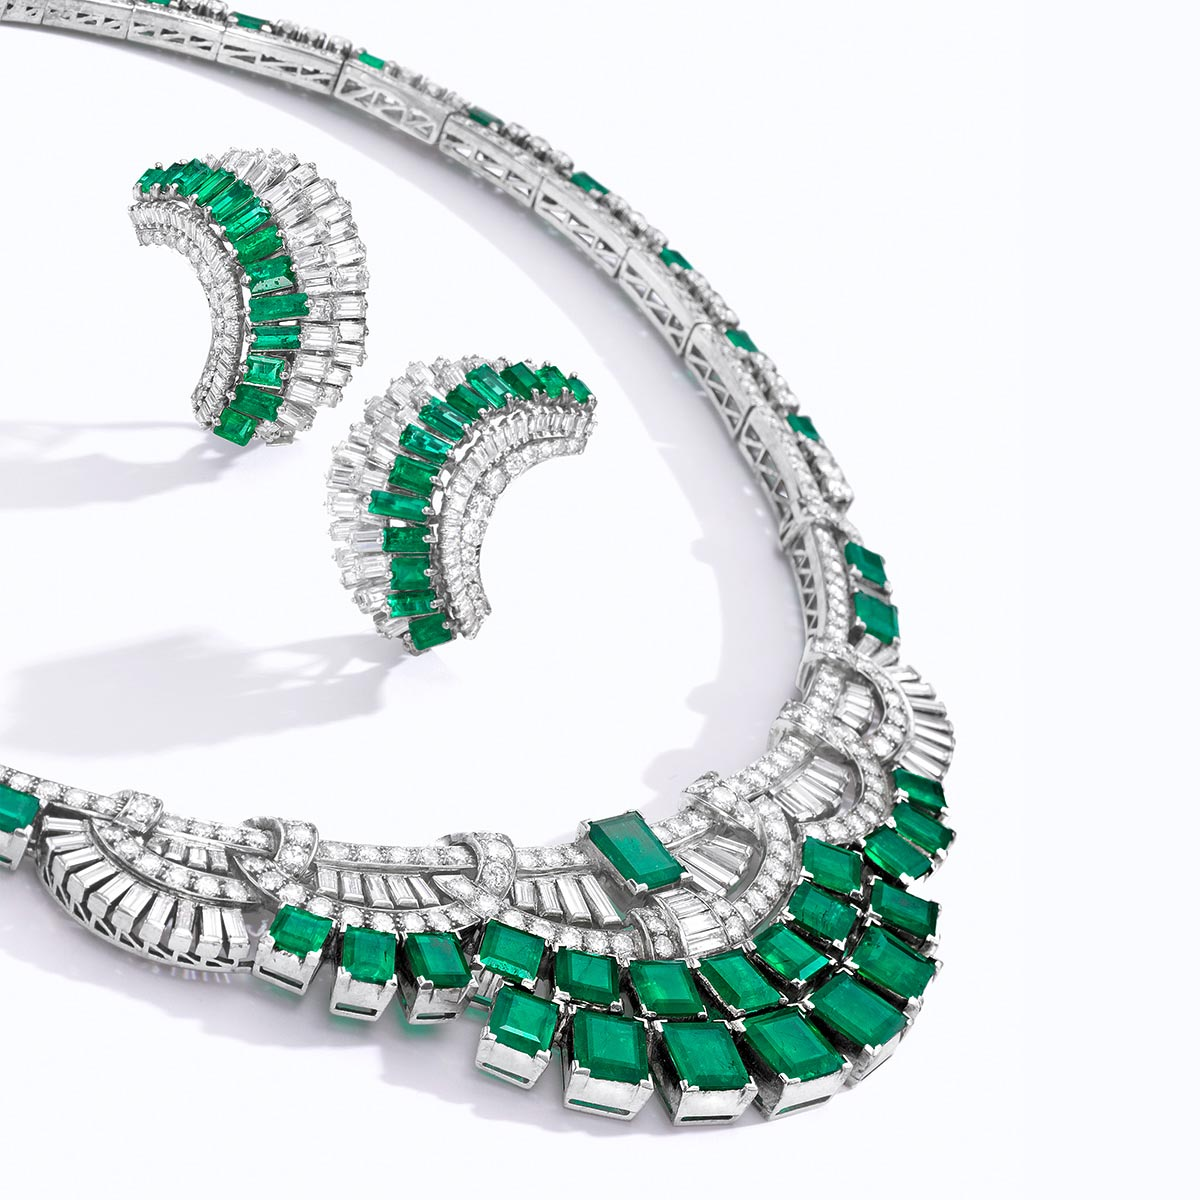 An emerald, diamond and platinum necklace and earrings